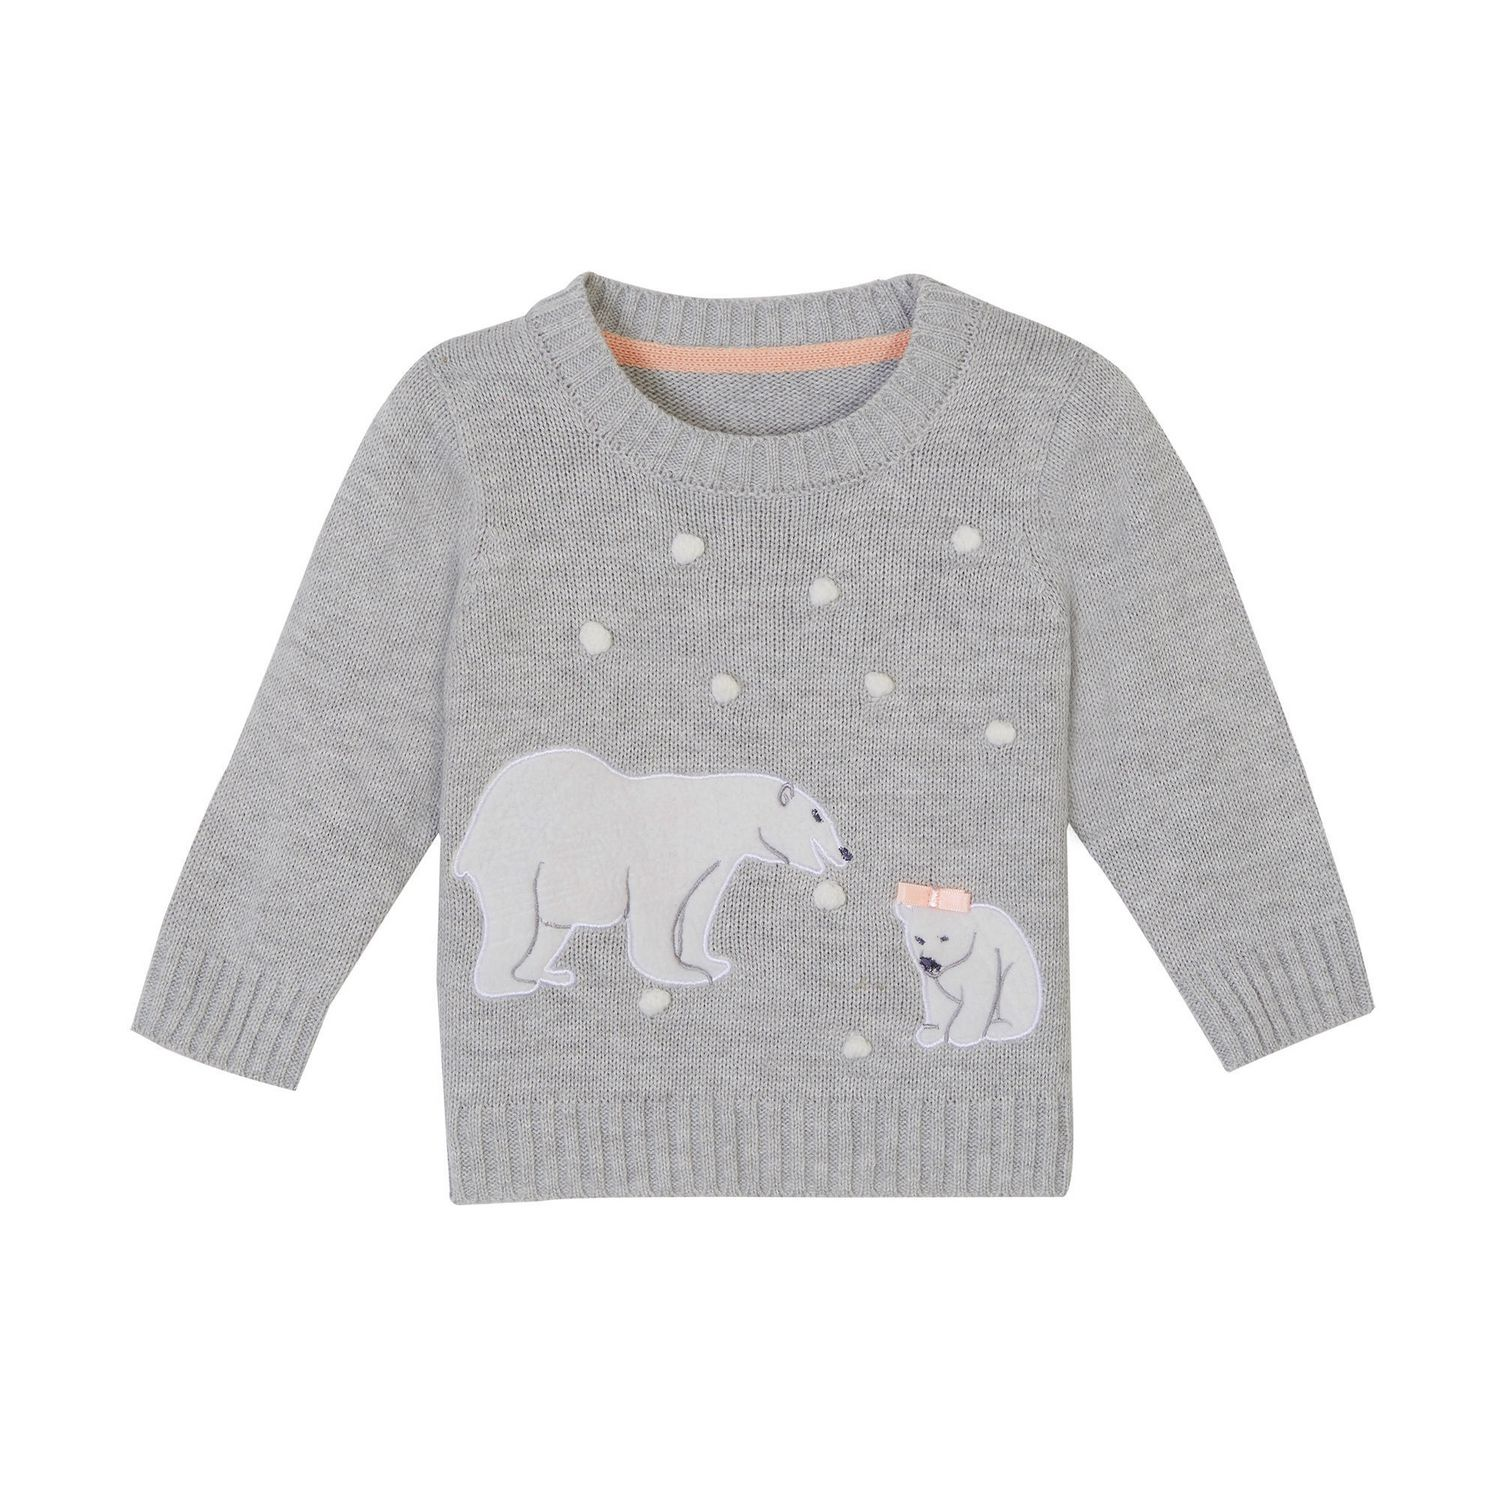 14174eb36960 George baby Girls  Applique Holiday Sweater